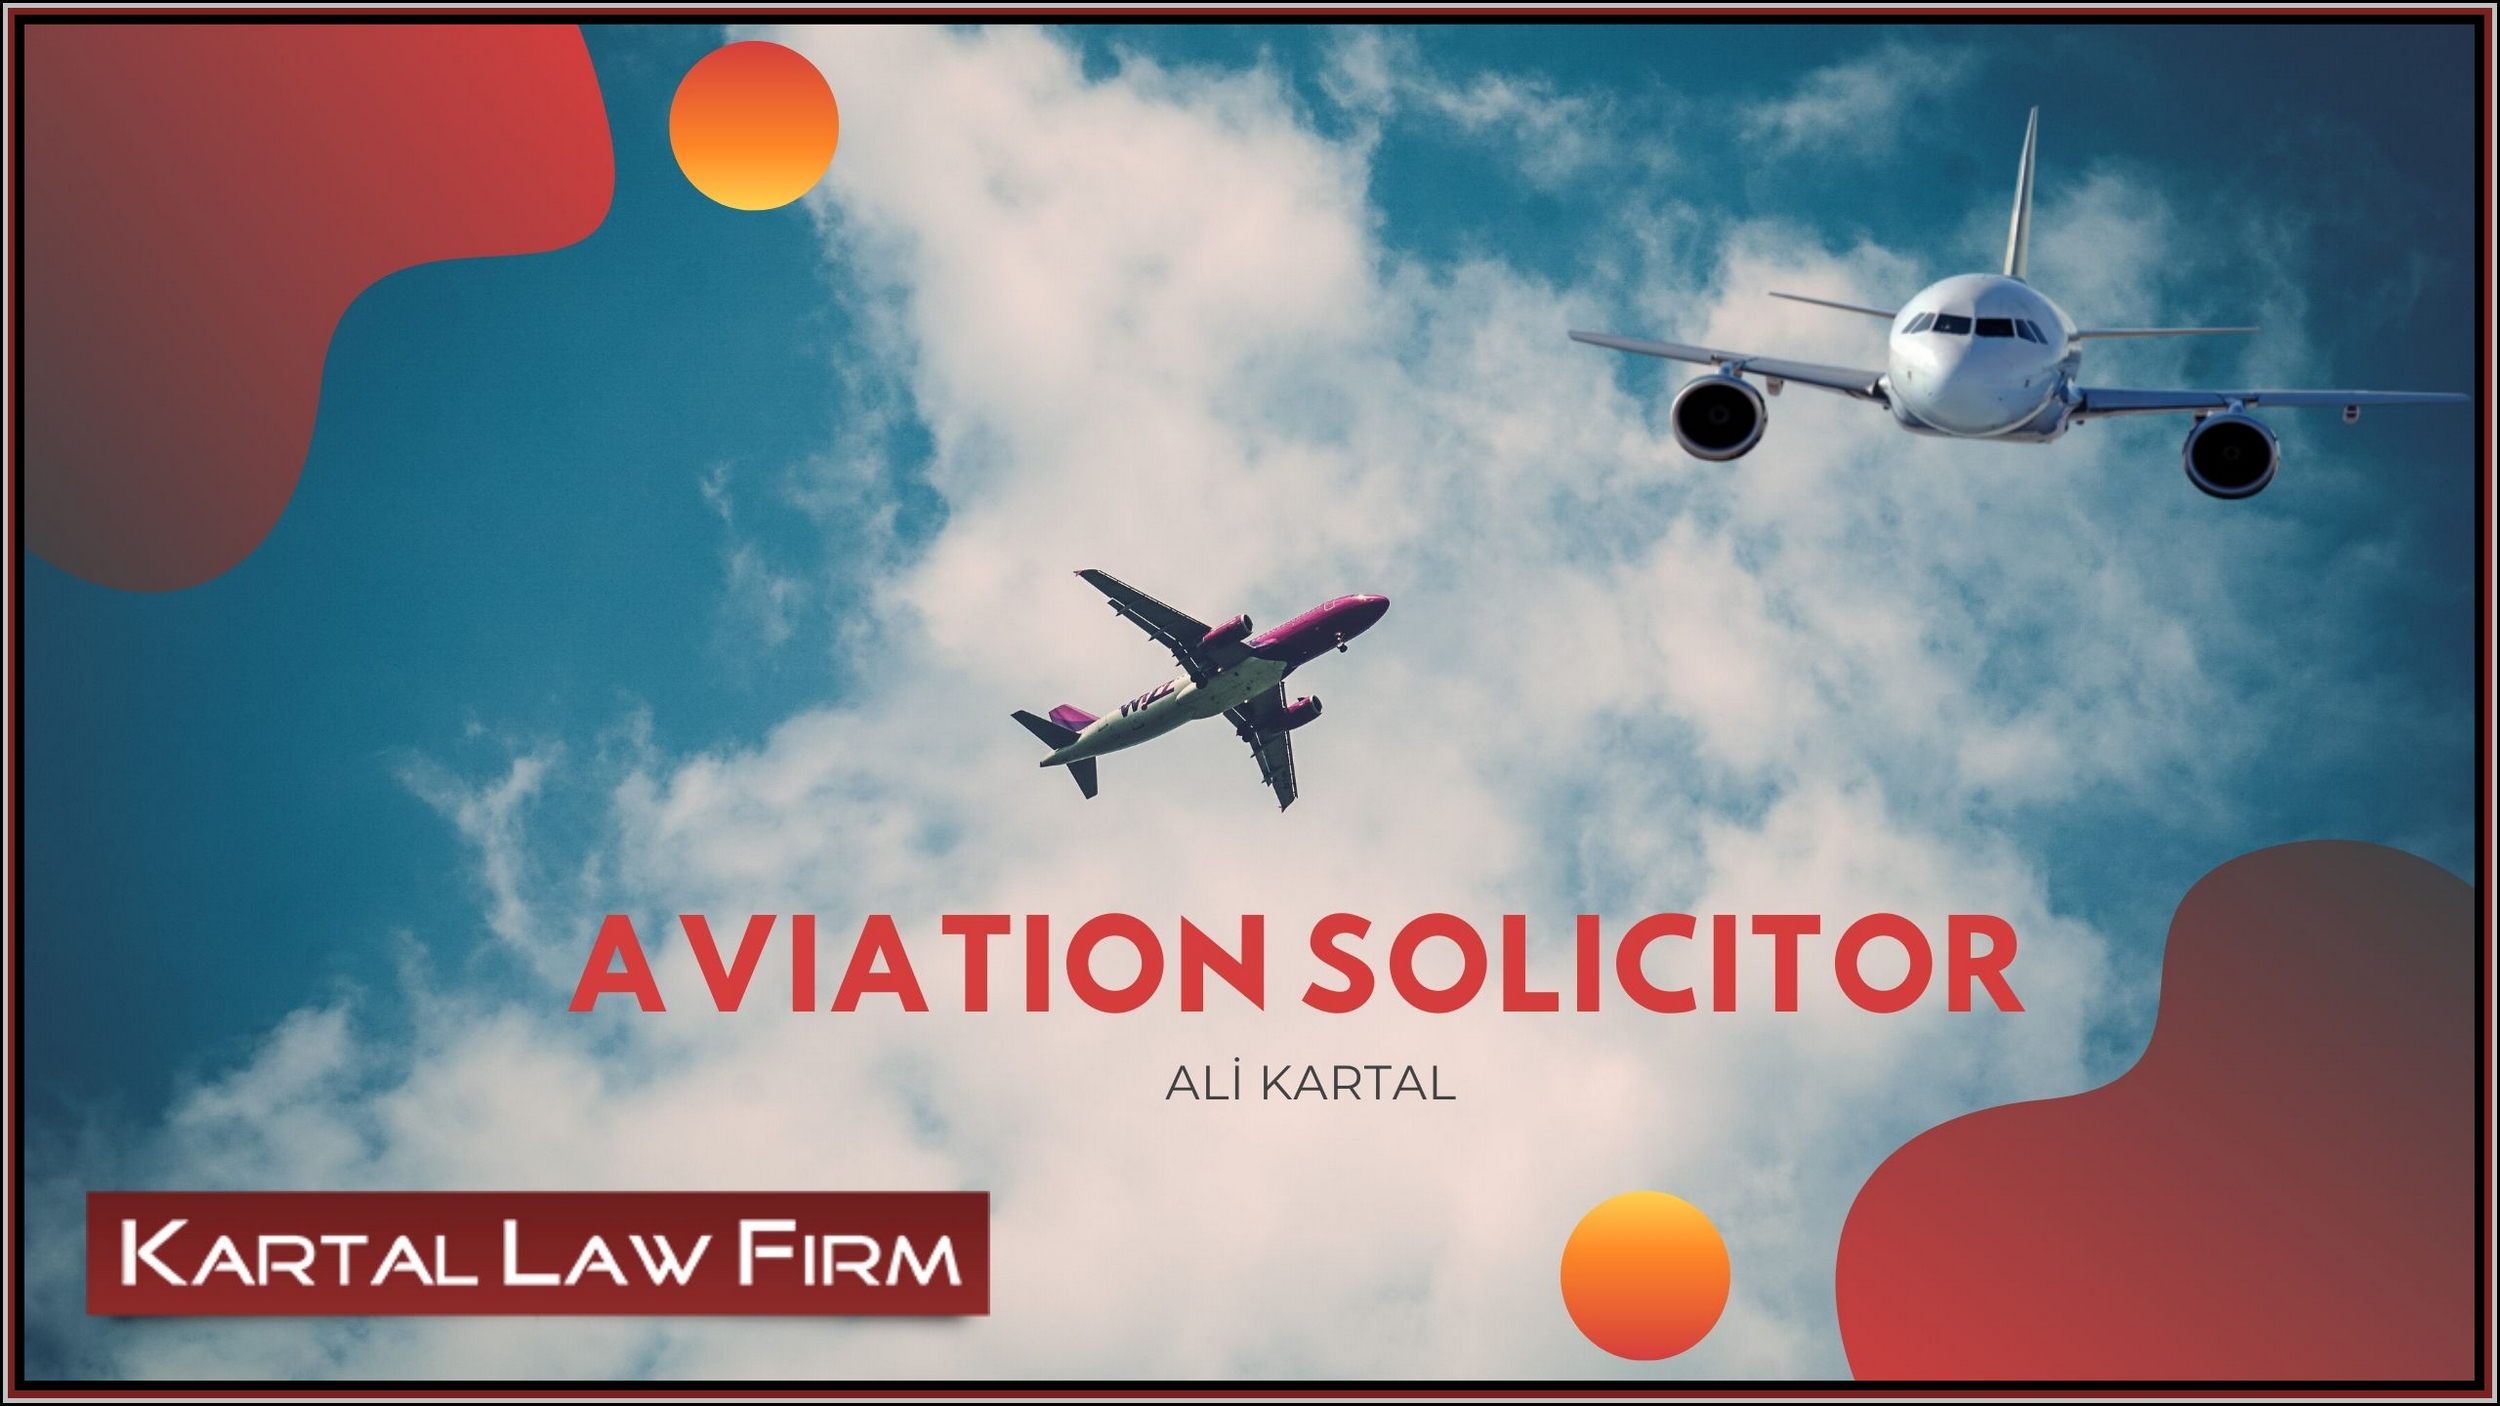 Aviation Solicitor